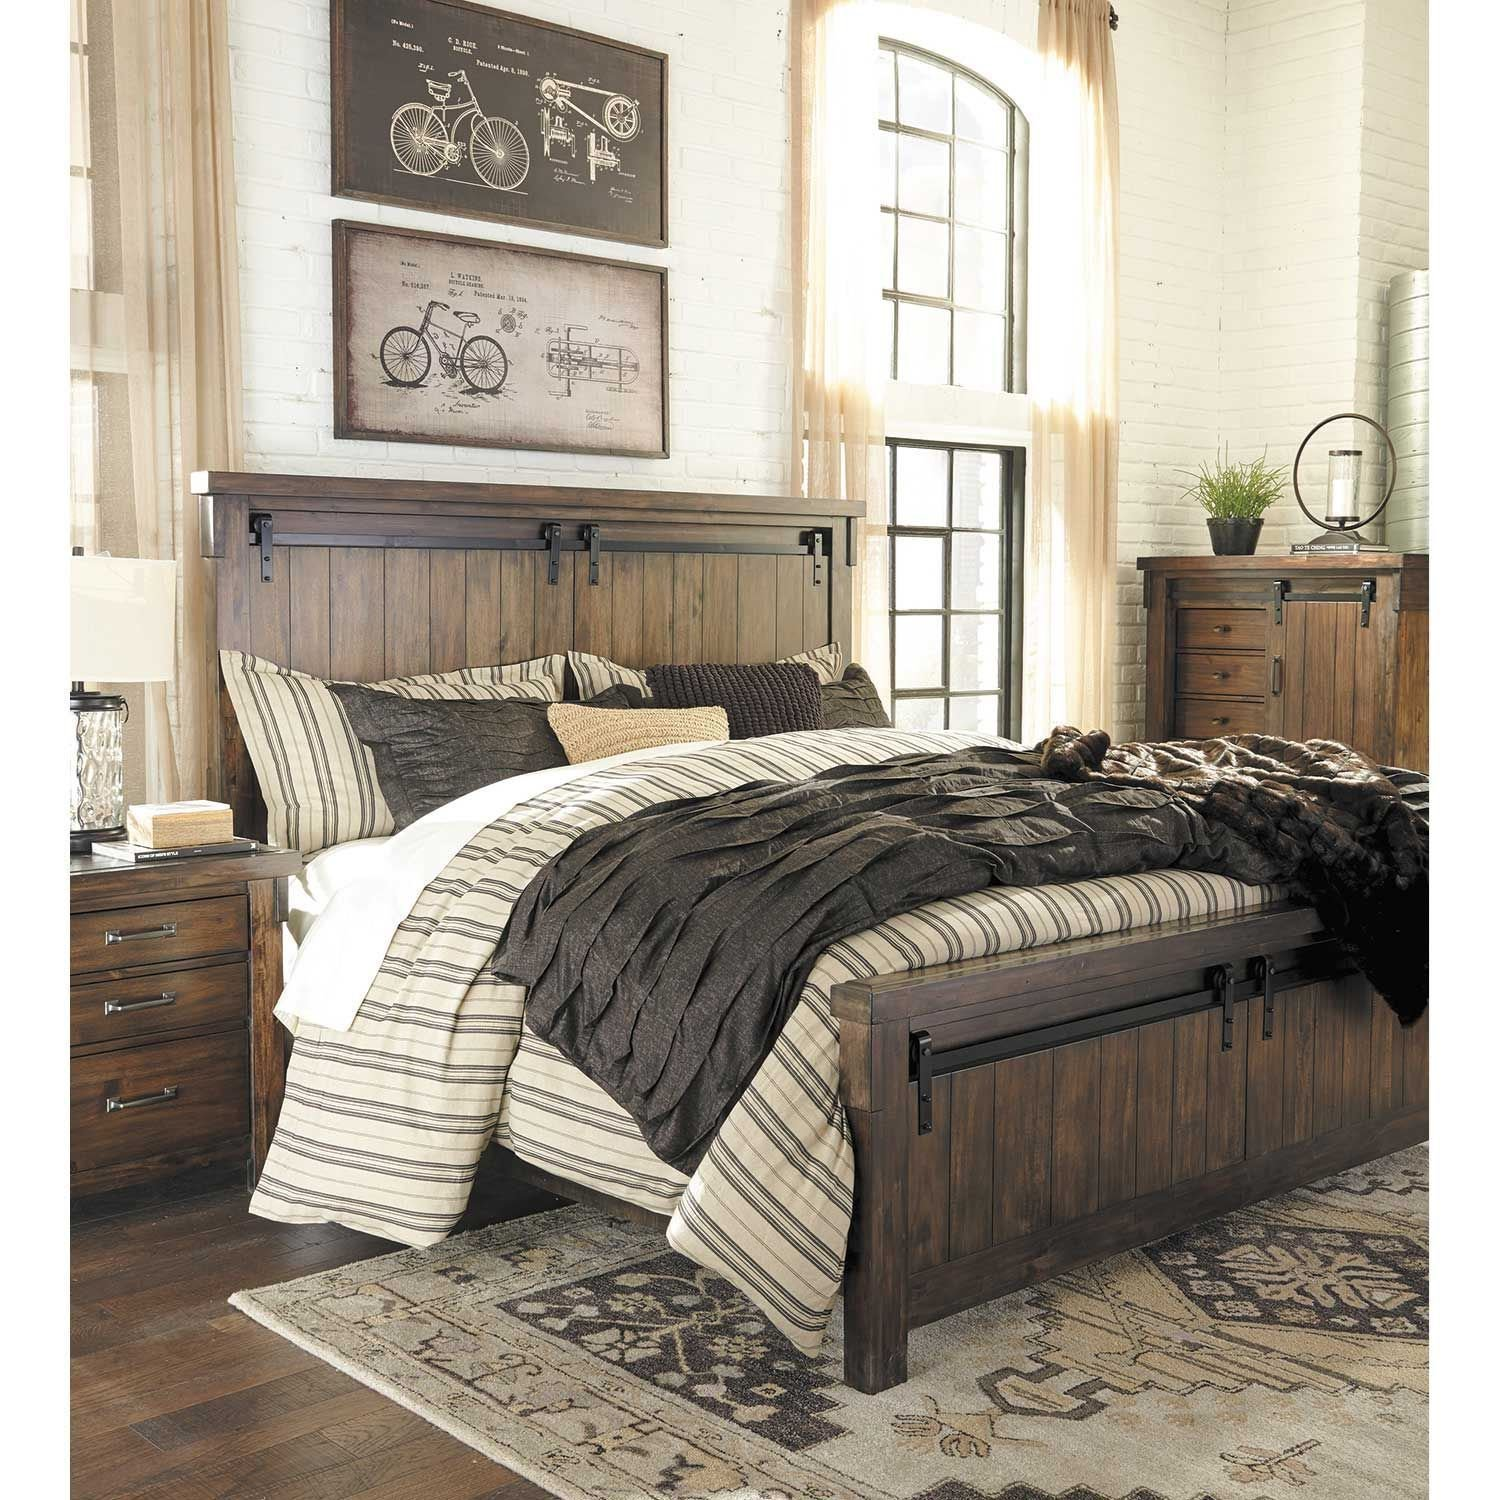 Best Lakeleigh 5 Piece Bedroom Set B718 Qbed 31 36 46 93 With Pictures